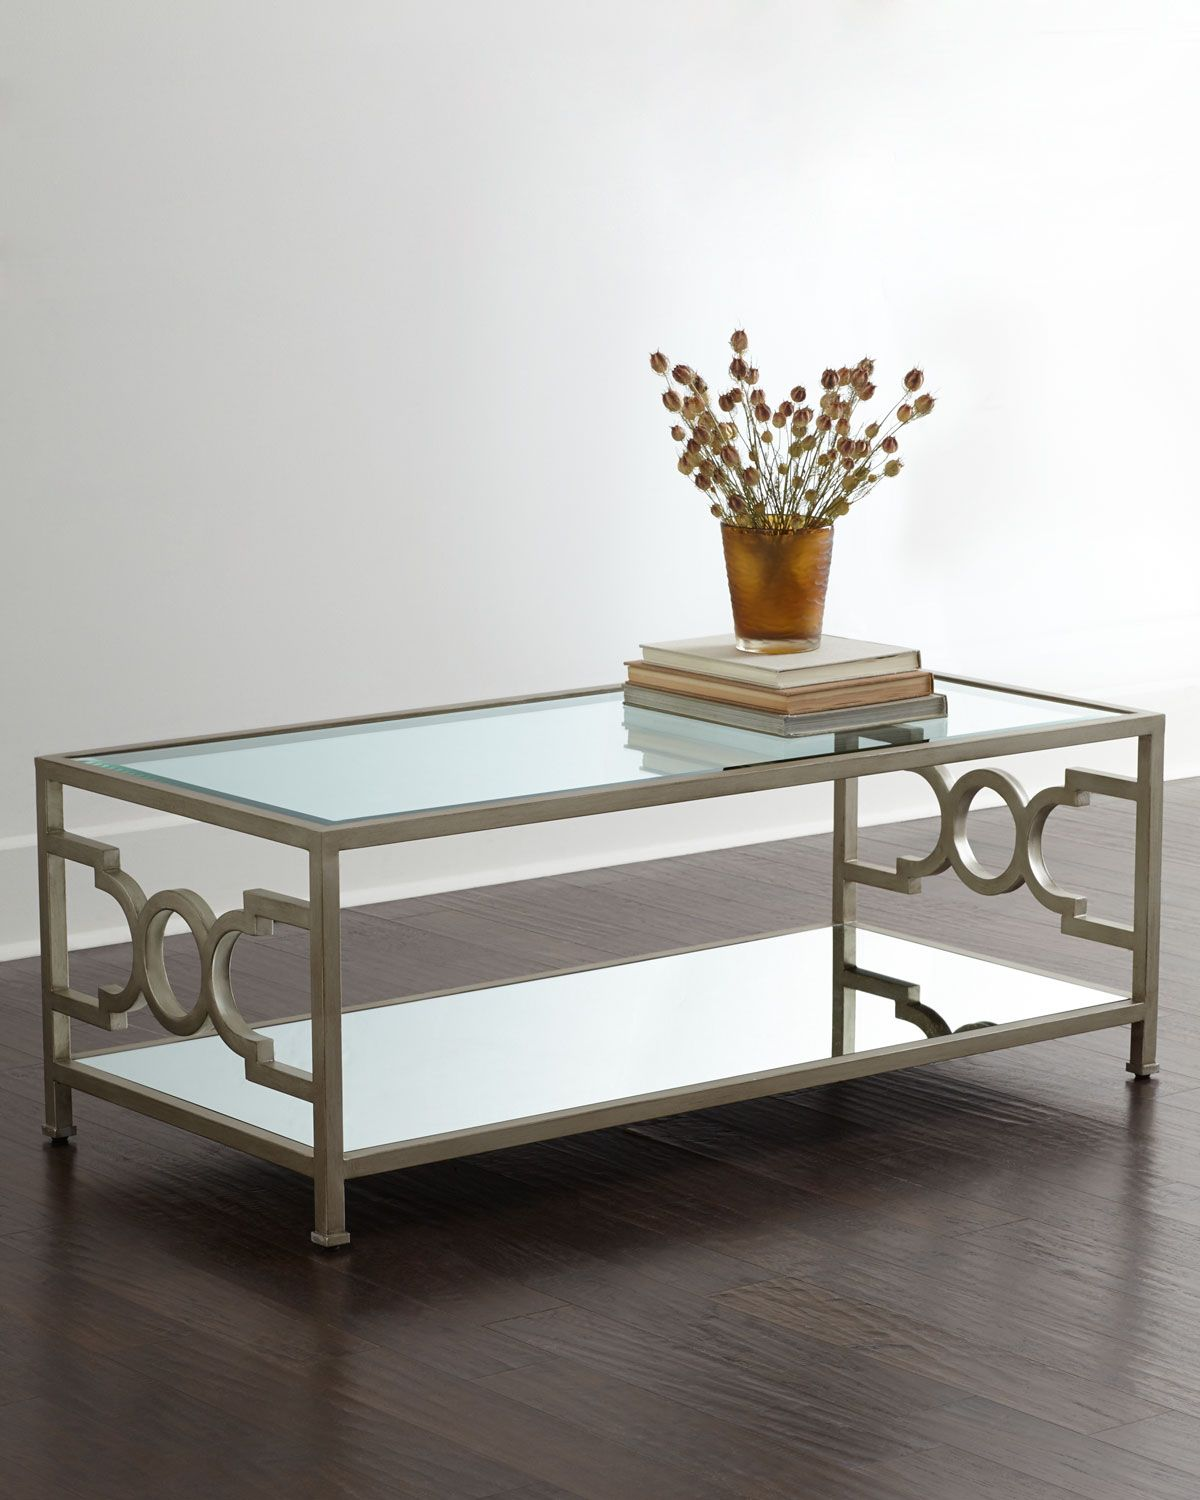 Hendrix mirrored coffee table mirrored coffee tables candice hendrix mirrored coffee table geotapseo Image collections